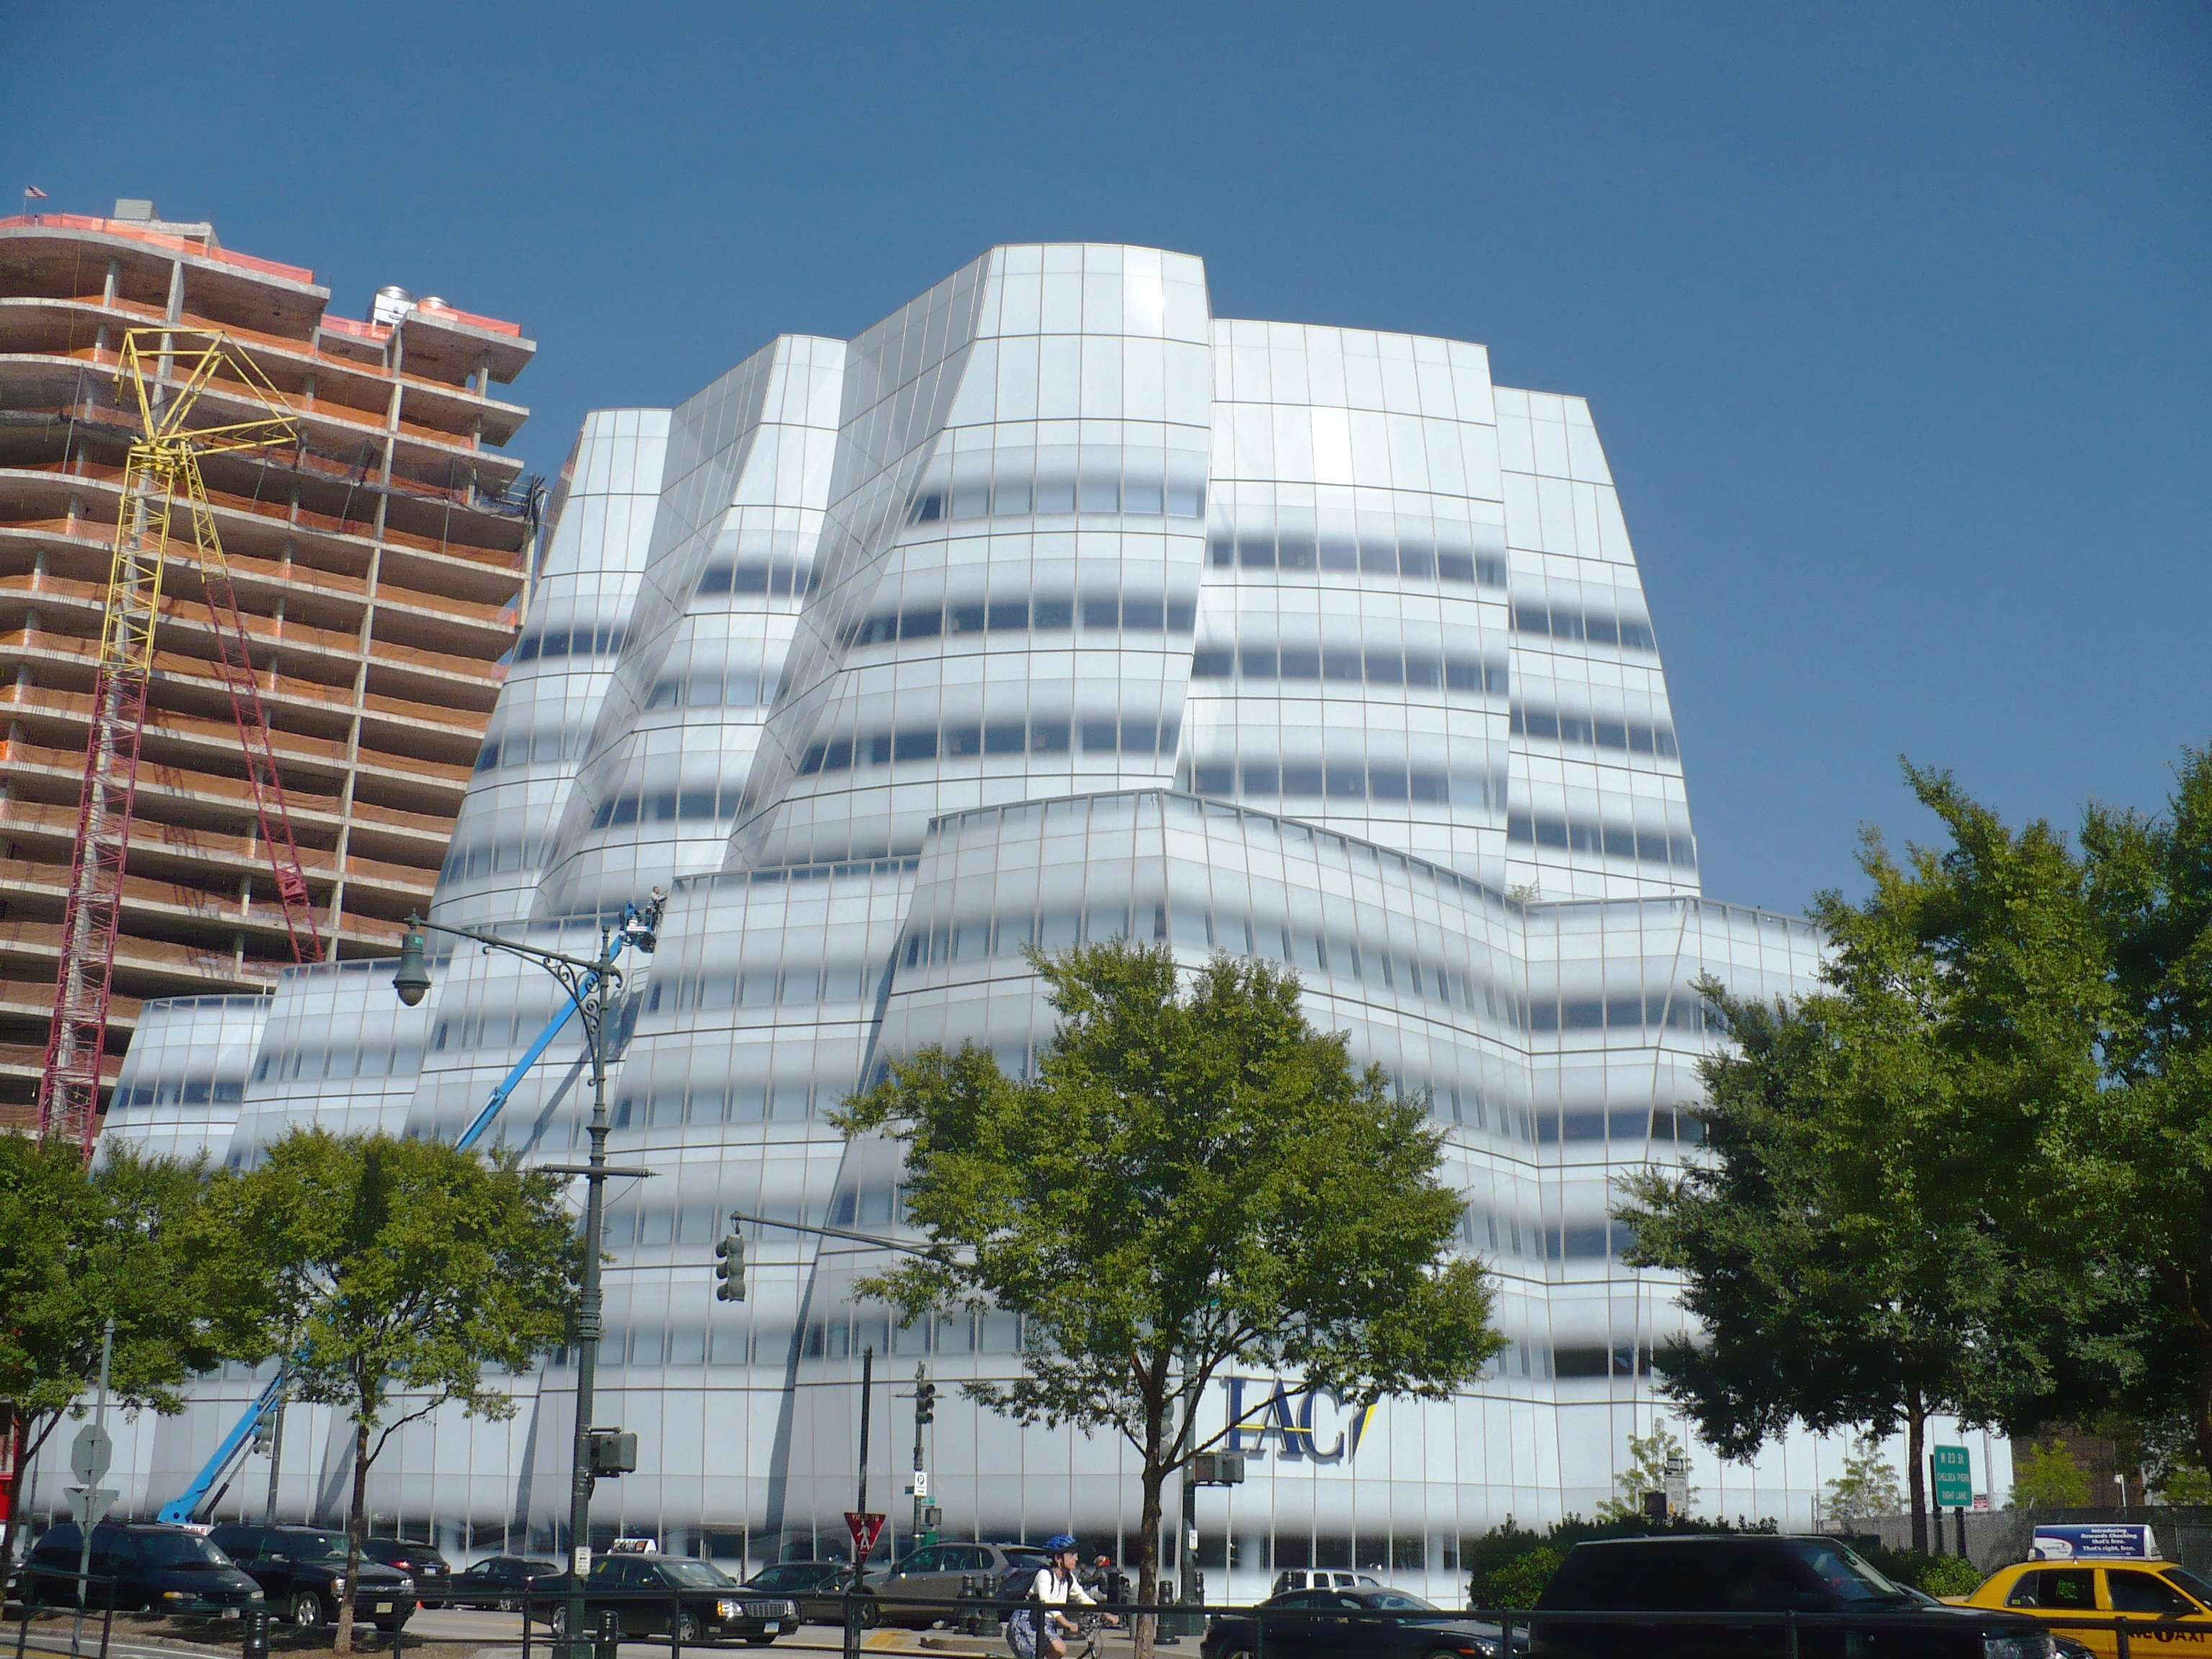 http://upload.wikimedia.org/wikipedia/commons/4/4e/Edificio_IAC_InterActiveCorp.JPG